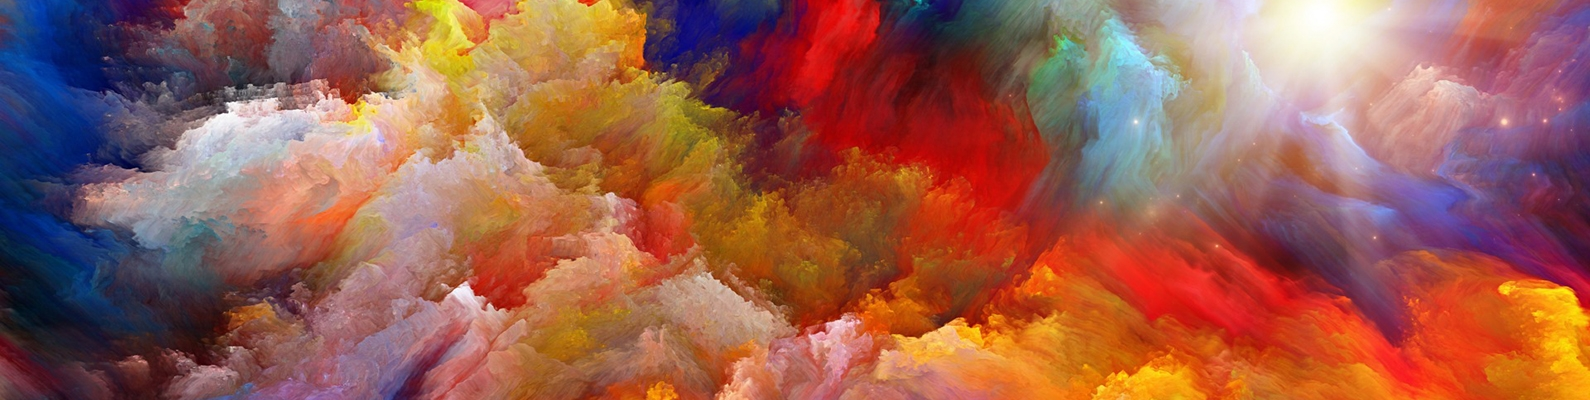 background, color explosion, sky, abstact, colors